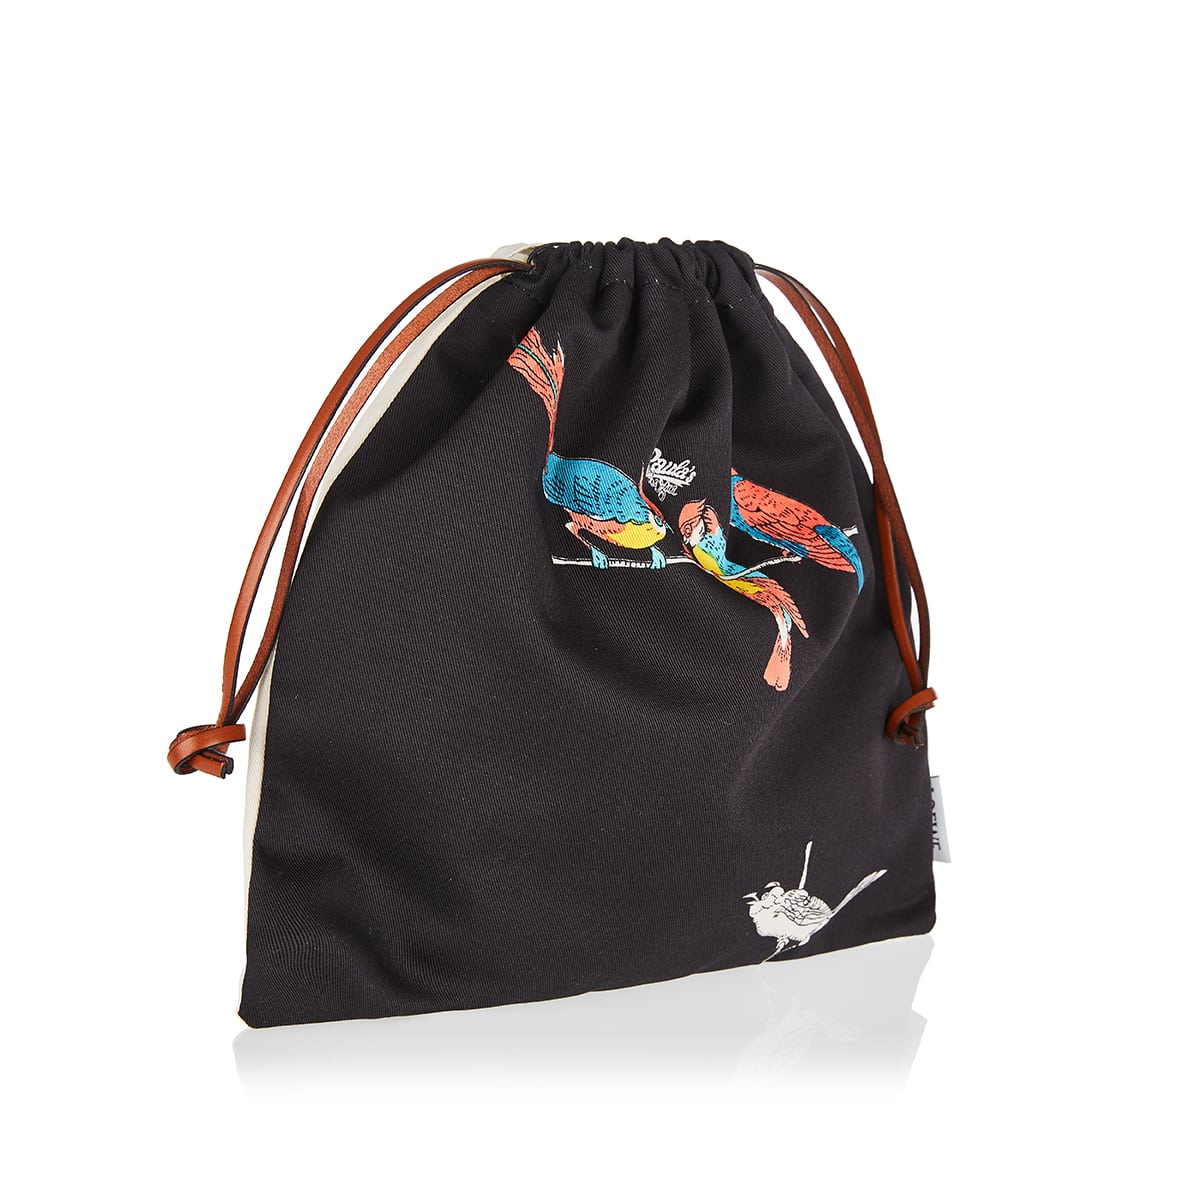 Parrot small printed canvas pouch